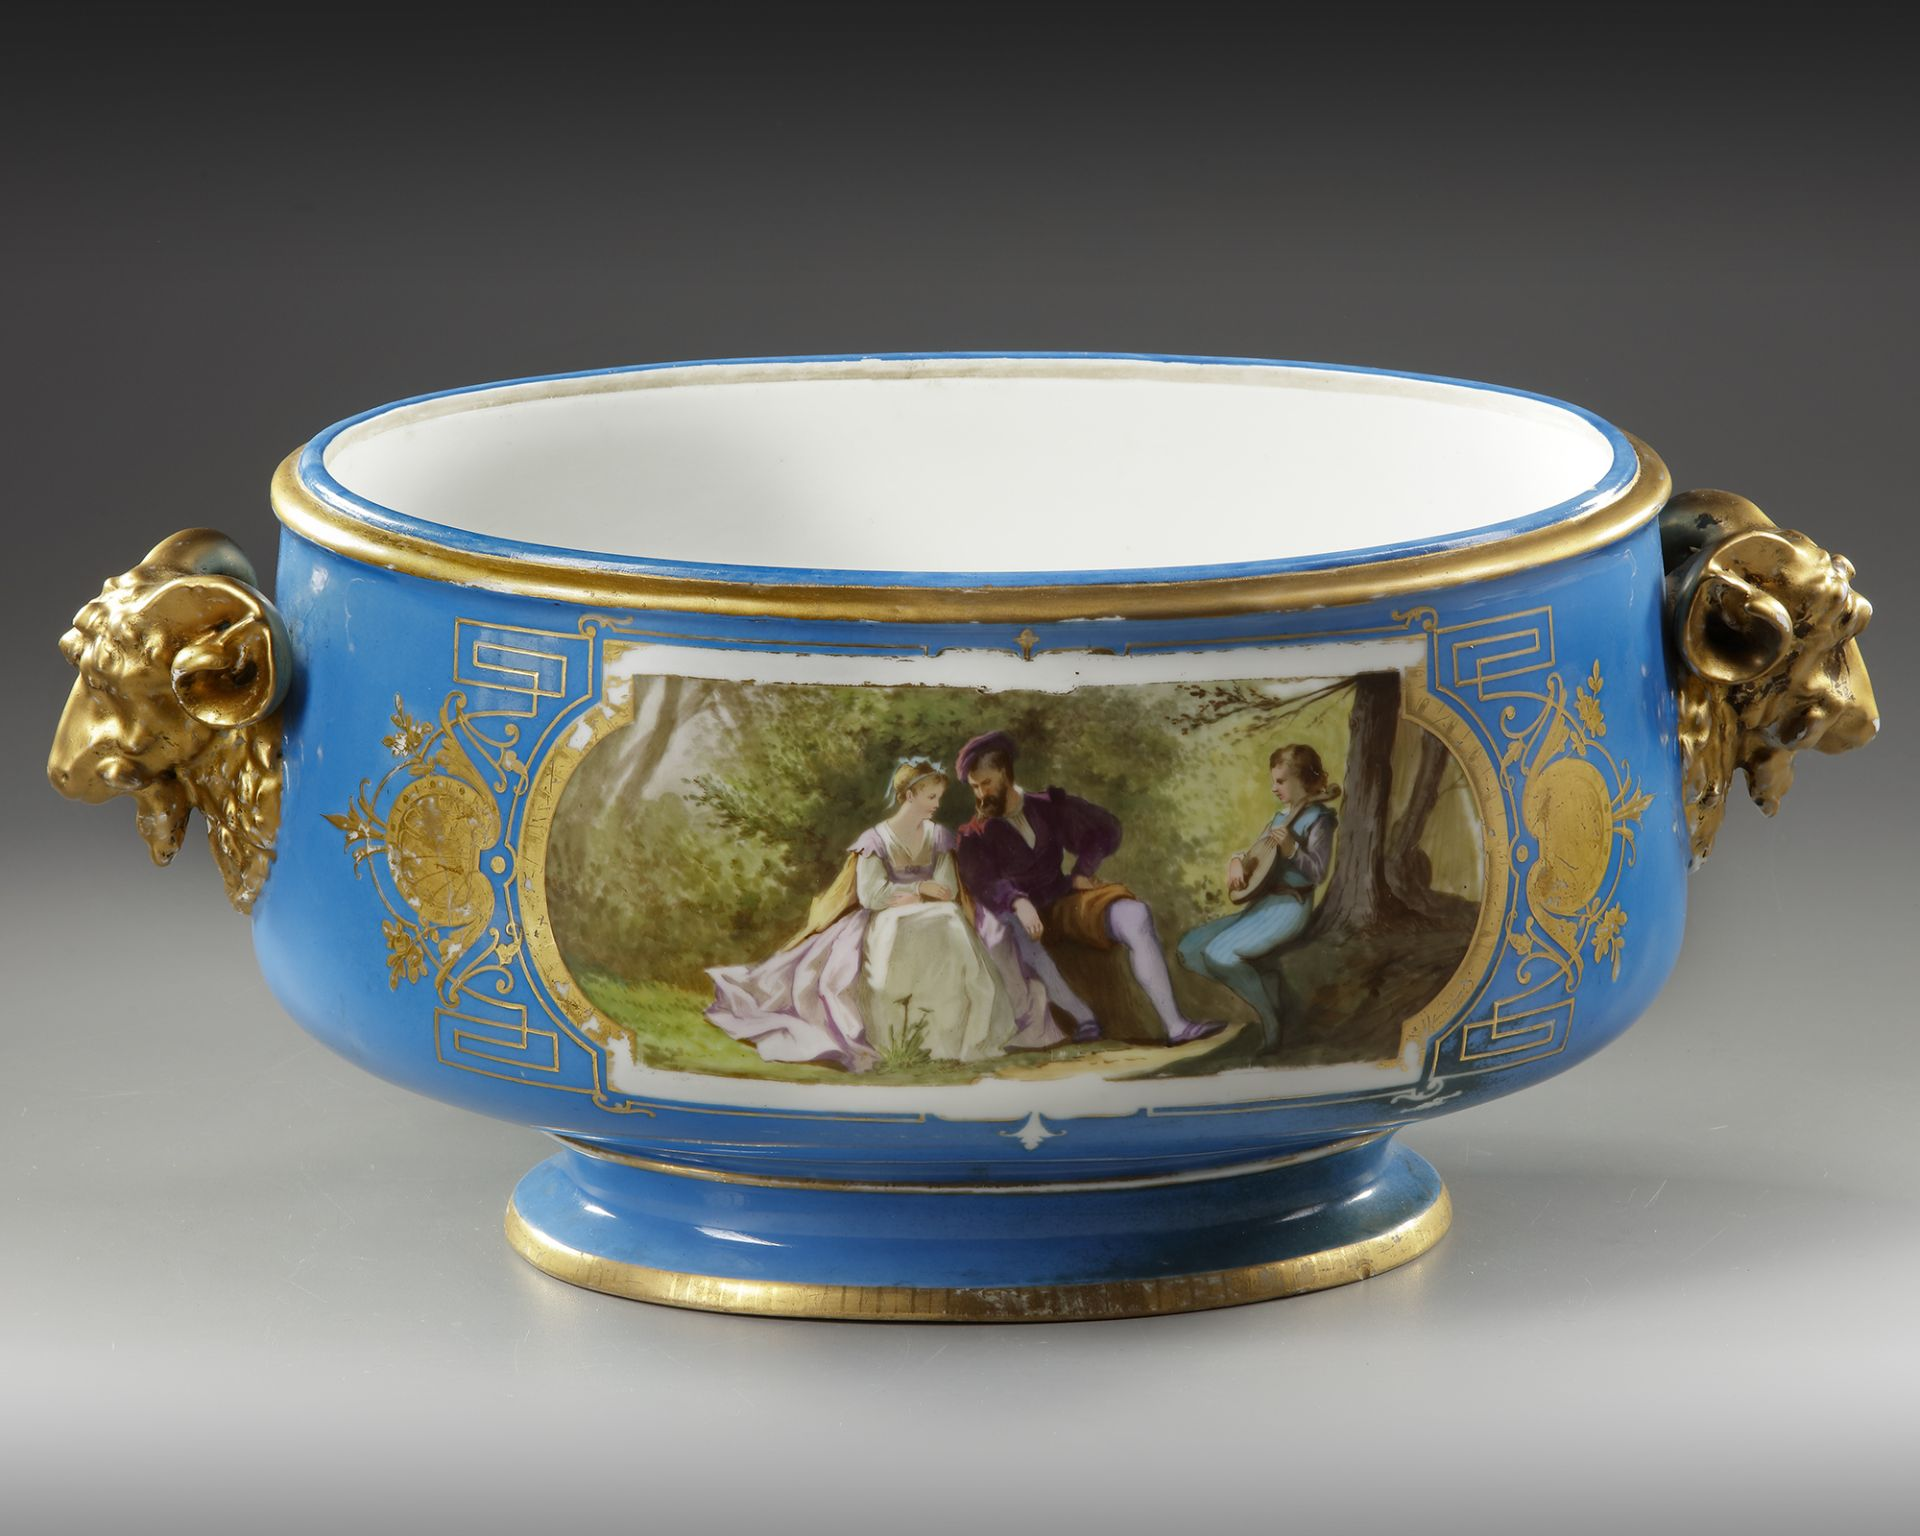 A FRENCH SEVRES PORCELAIN CUP, LATE 19TH CENTURY - Image 3 of 5